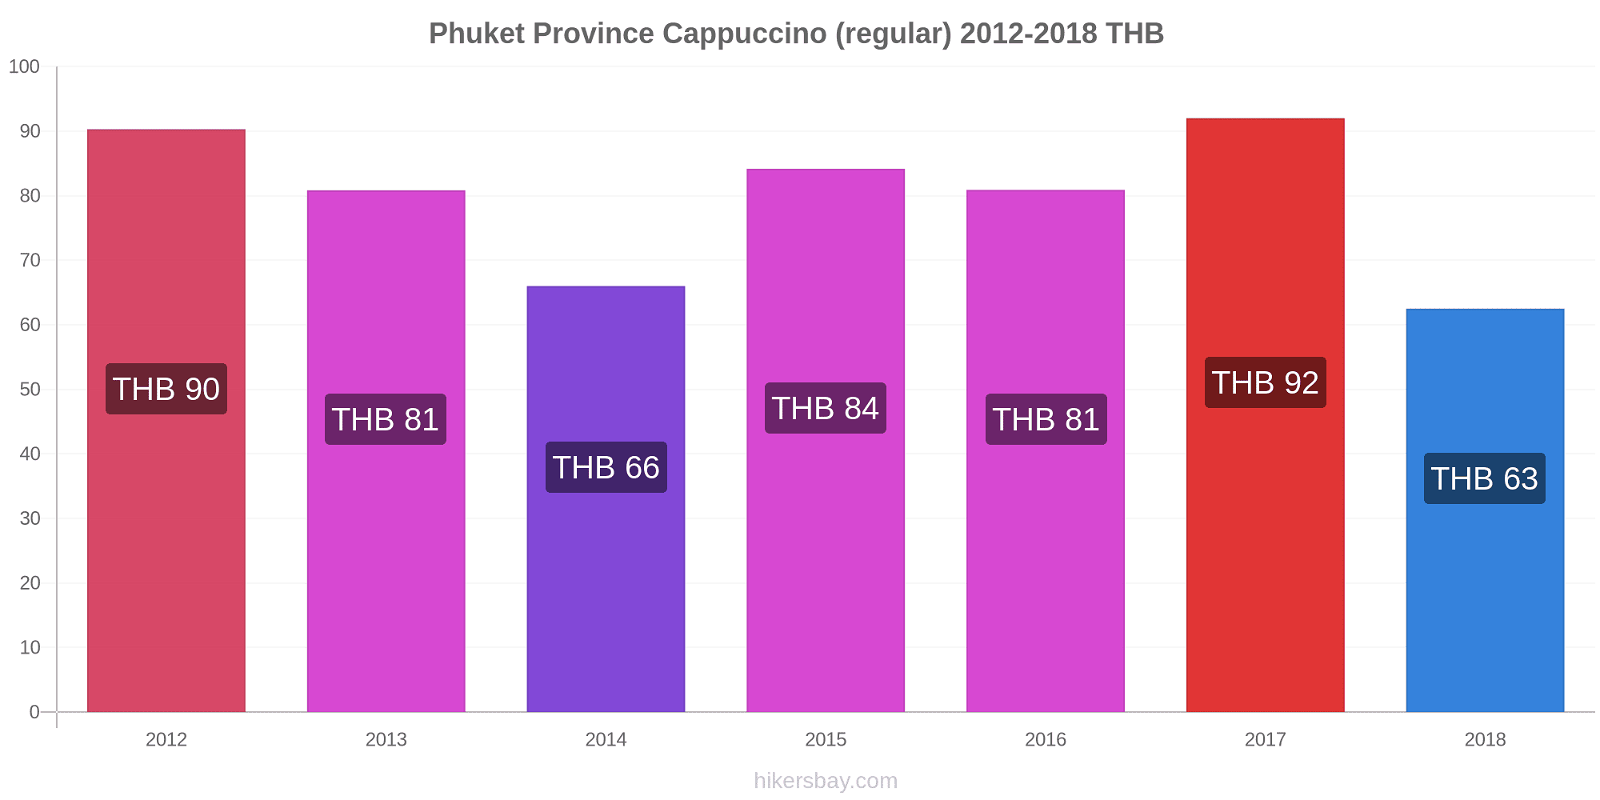 Phuket Province price changes Cappuccino (regular) hikersbay.com